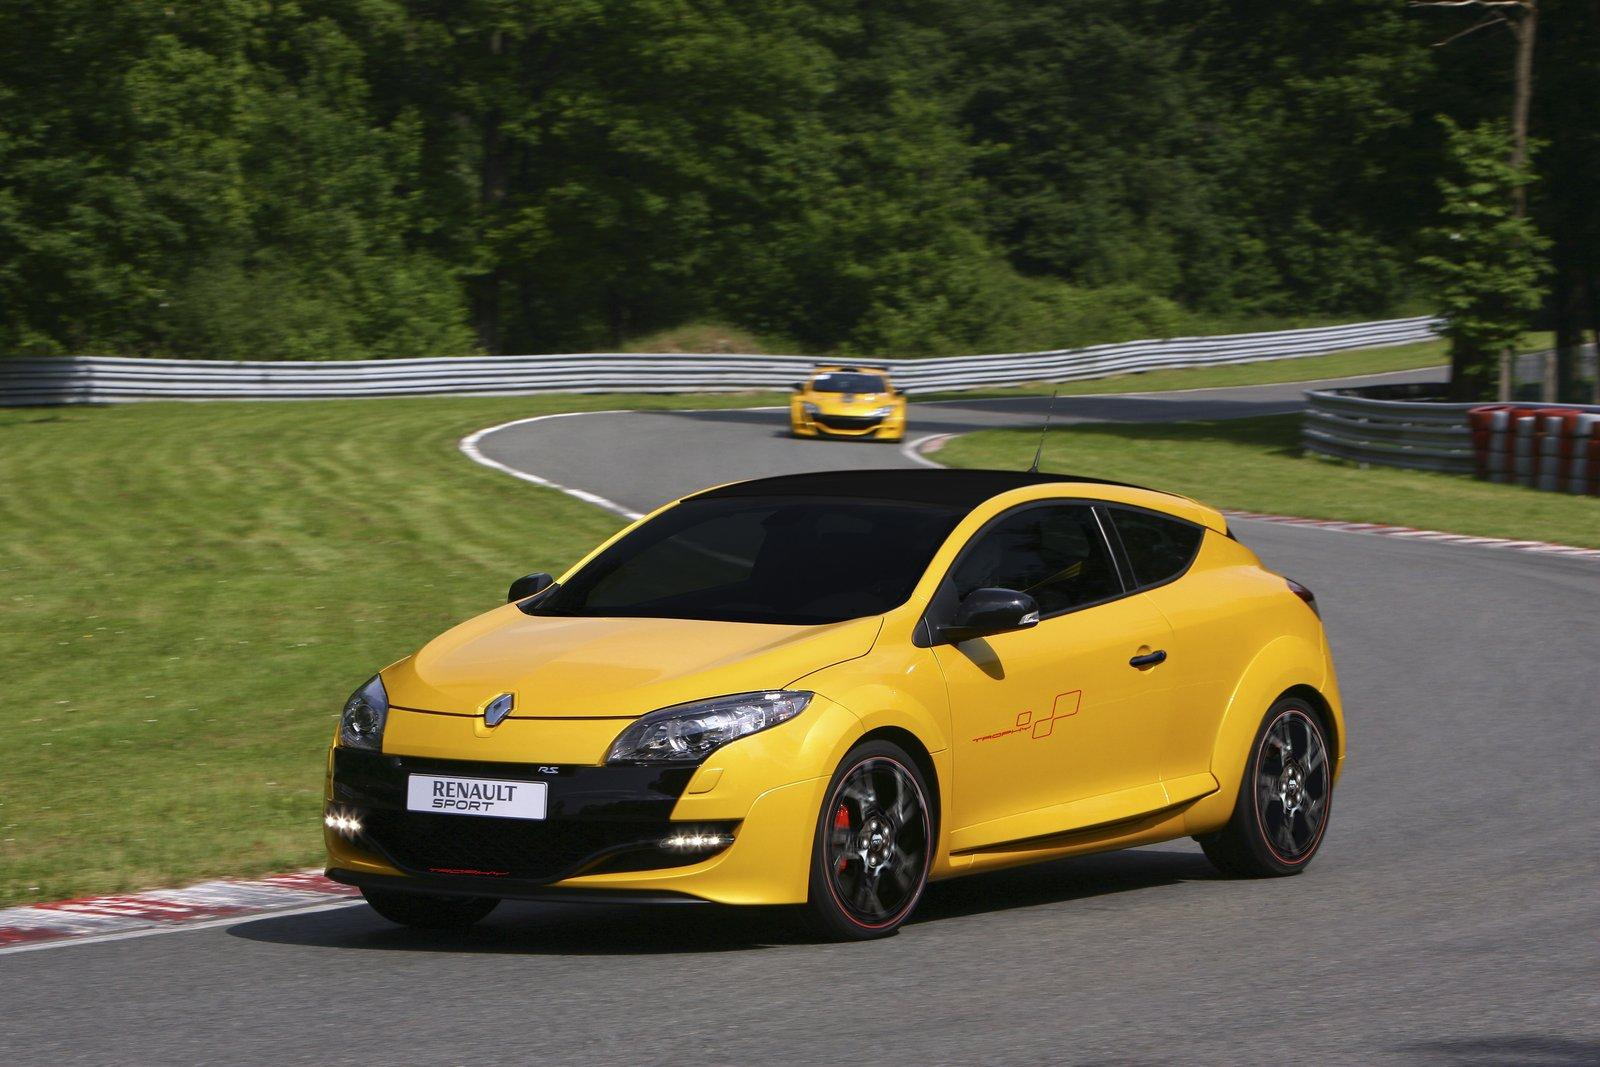 Renaultsport Megane 265 Trophy tuned by K-Tec Racing